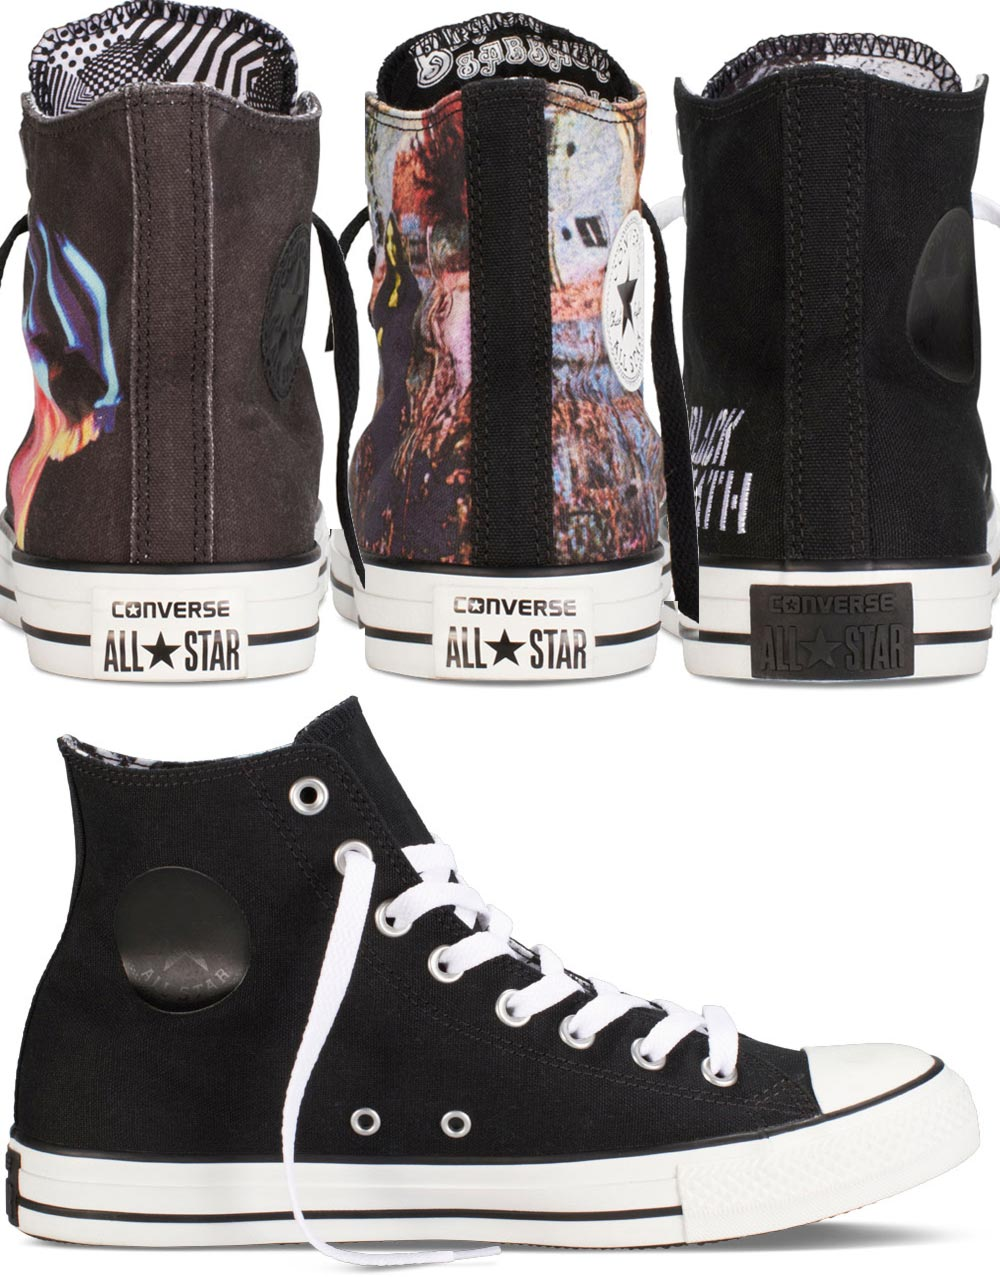 6599949c9d7d24 Converse Sneakers Collaborates With Black Sabbath Again - StyleFrizz